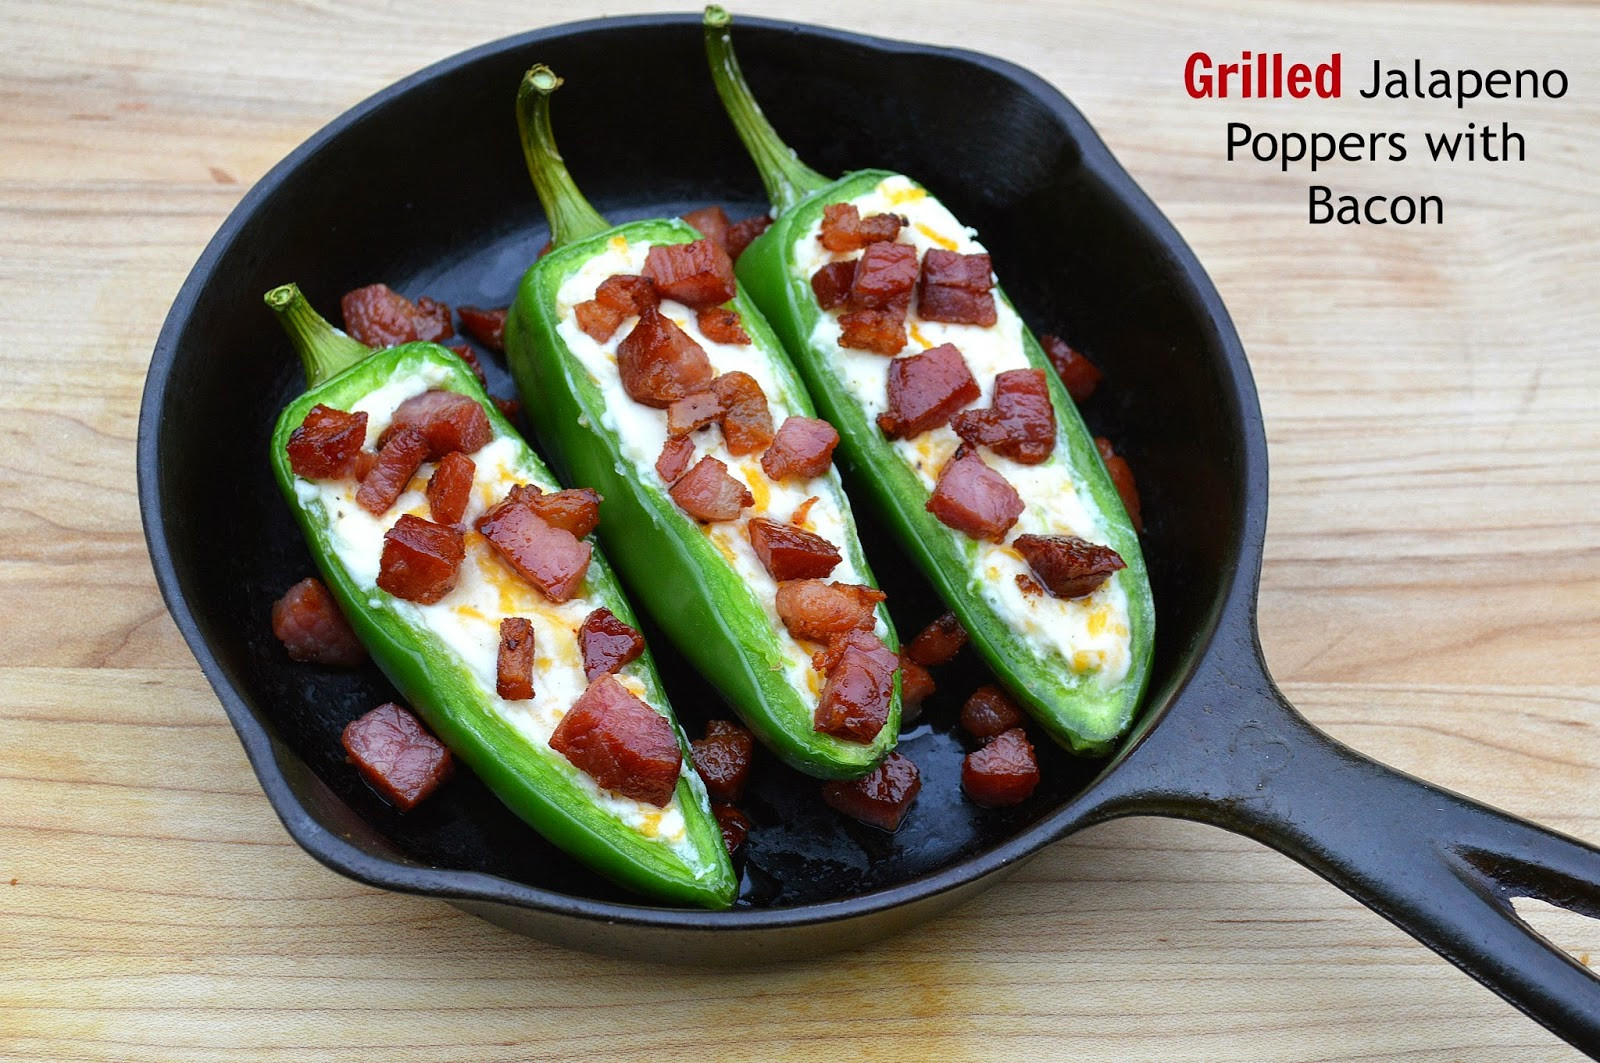 Jalapeno Poppers Grilled  Grilled Jalapeno Poppers with Bacon Bits Souffle Bombay